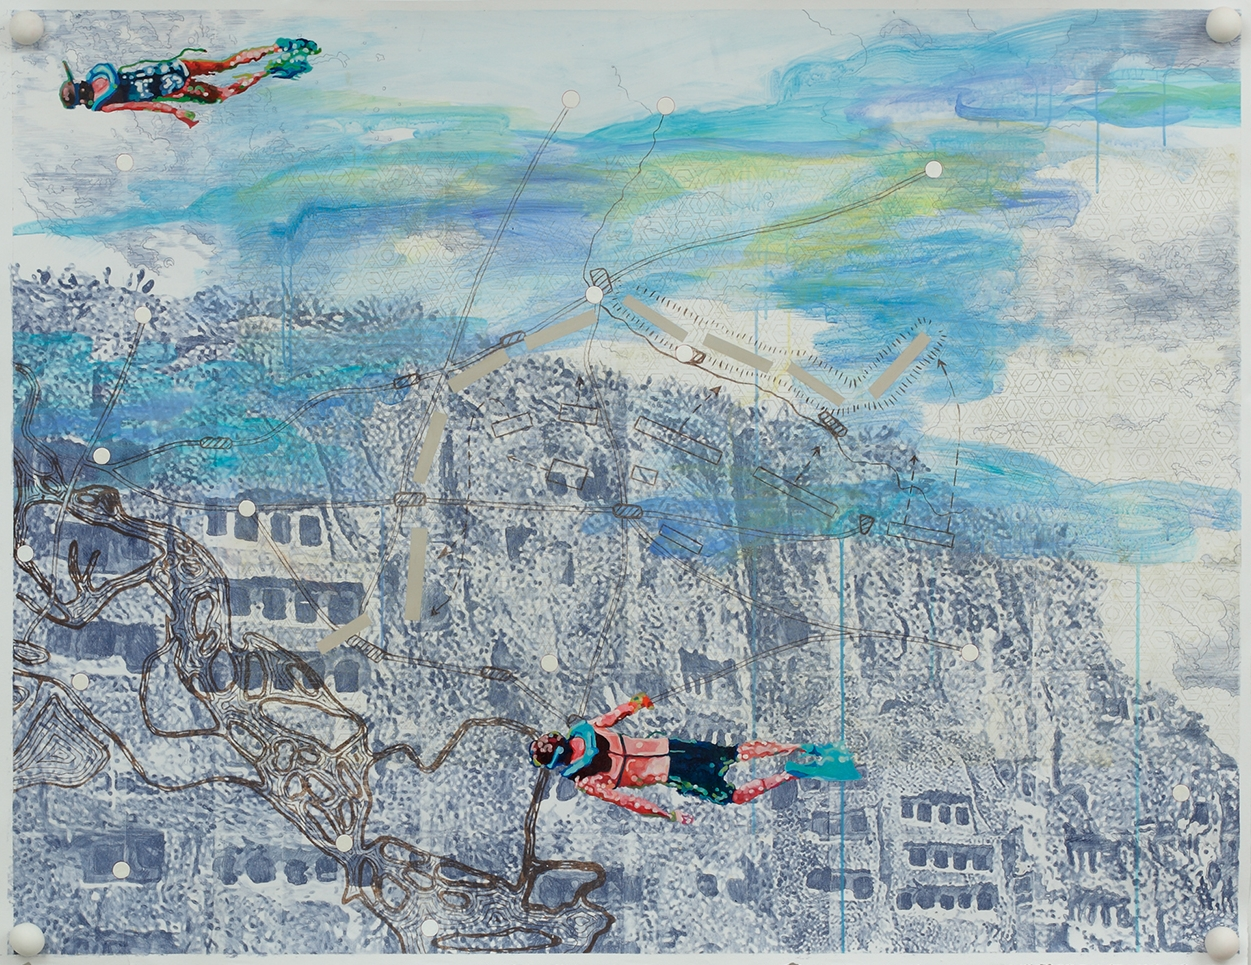 Reconstruction , 2011, Mixed media drawing on paper with polymer clay balls, 48 x 60 inches